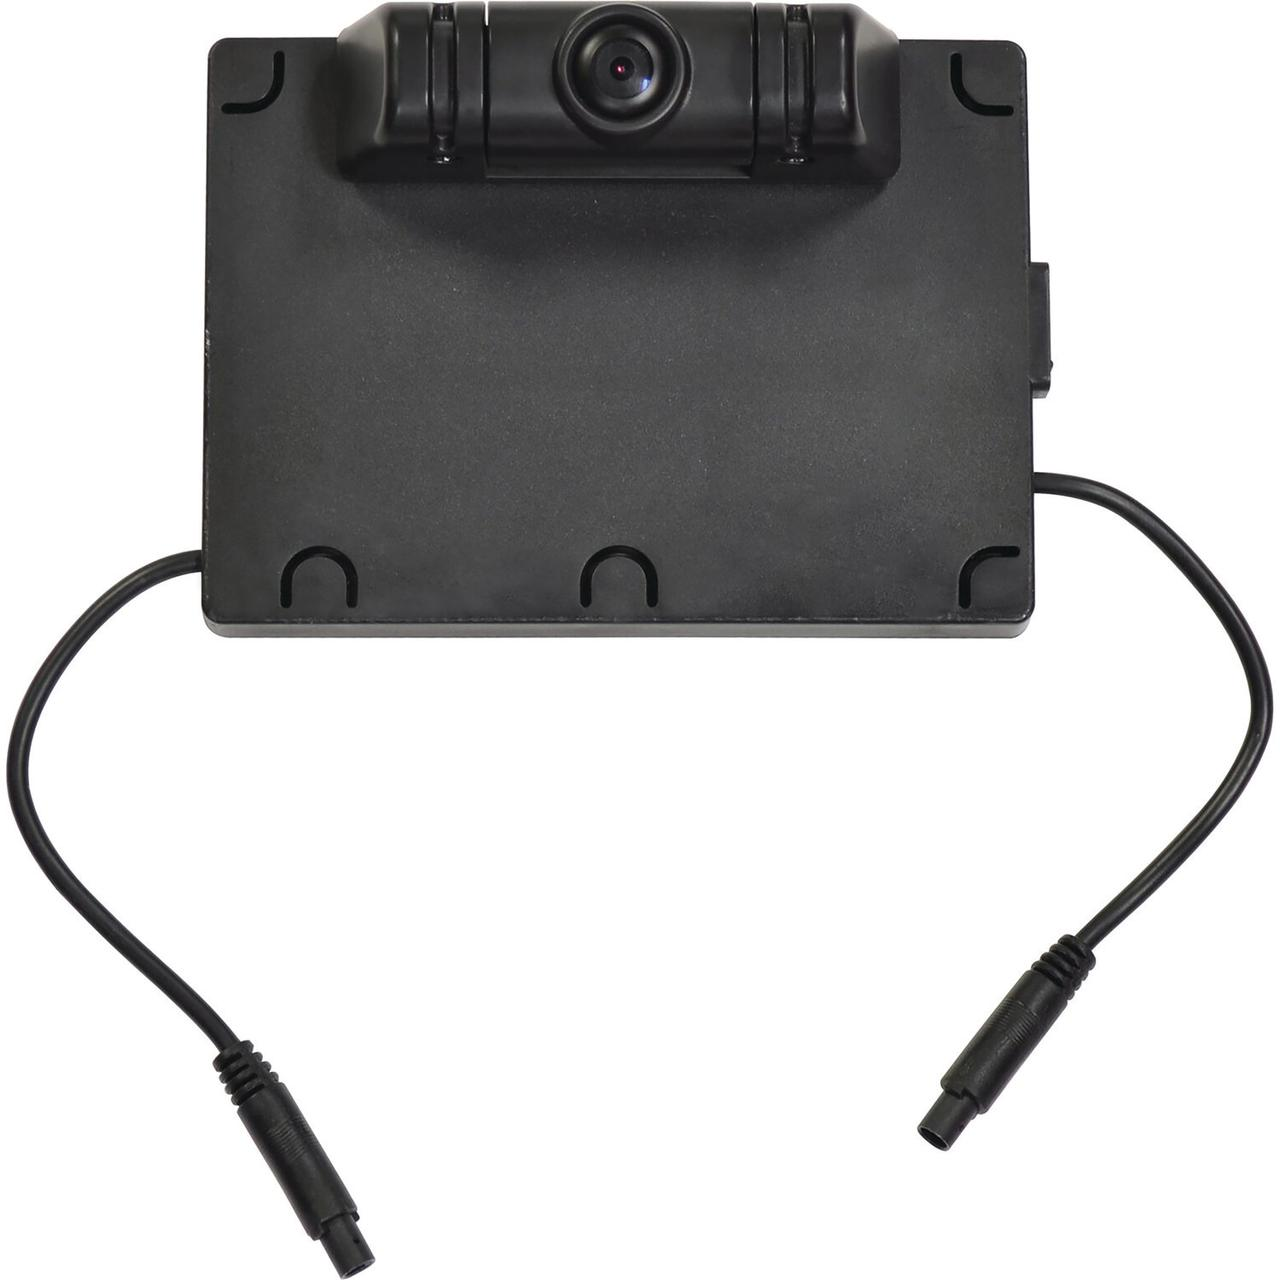 Whistler WBU-900 Digital Wireless Backup Camera - Walmart.com